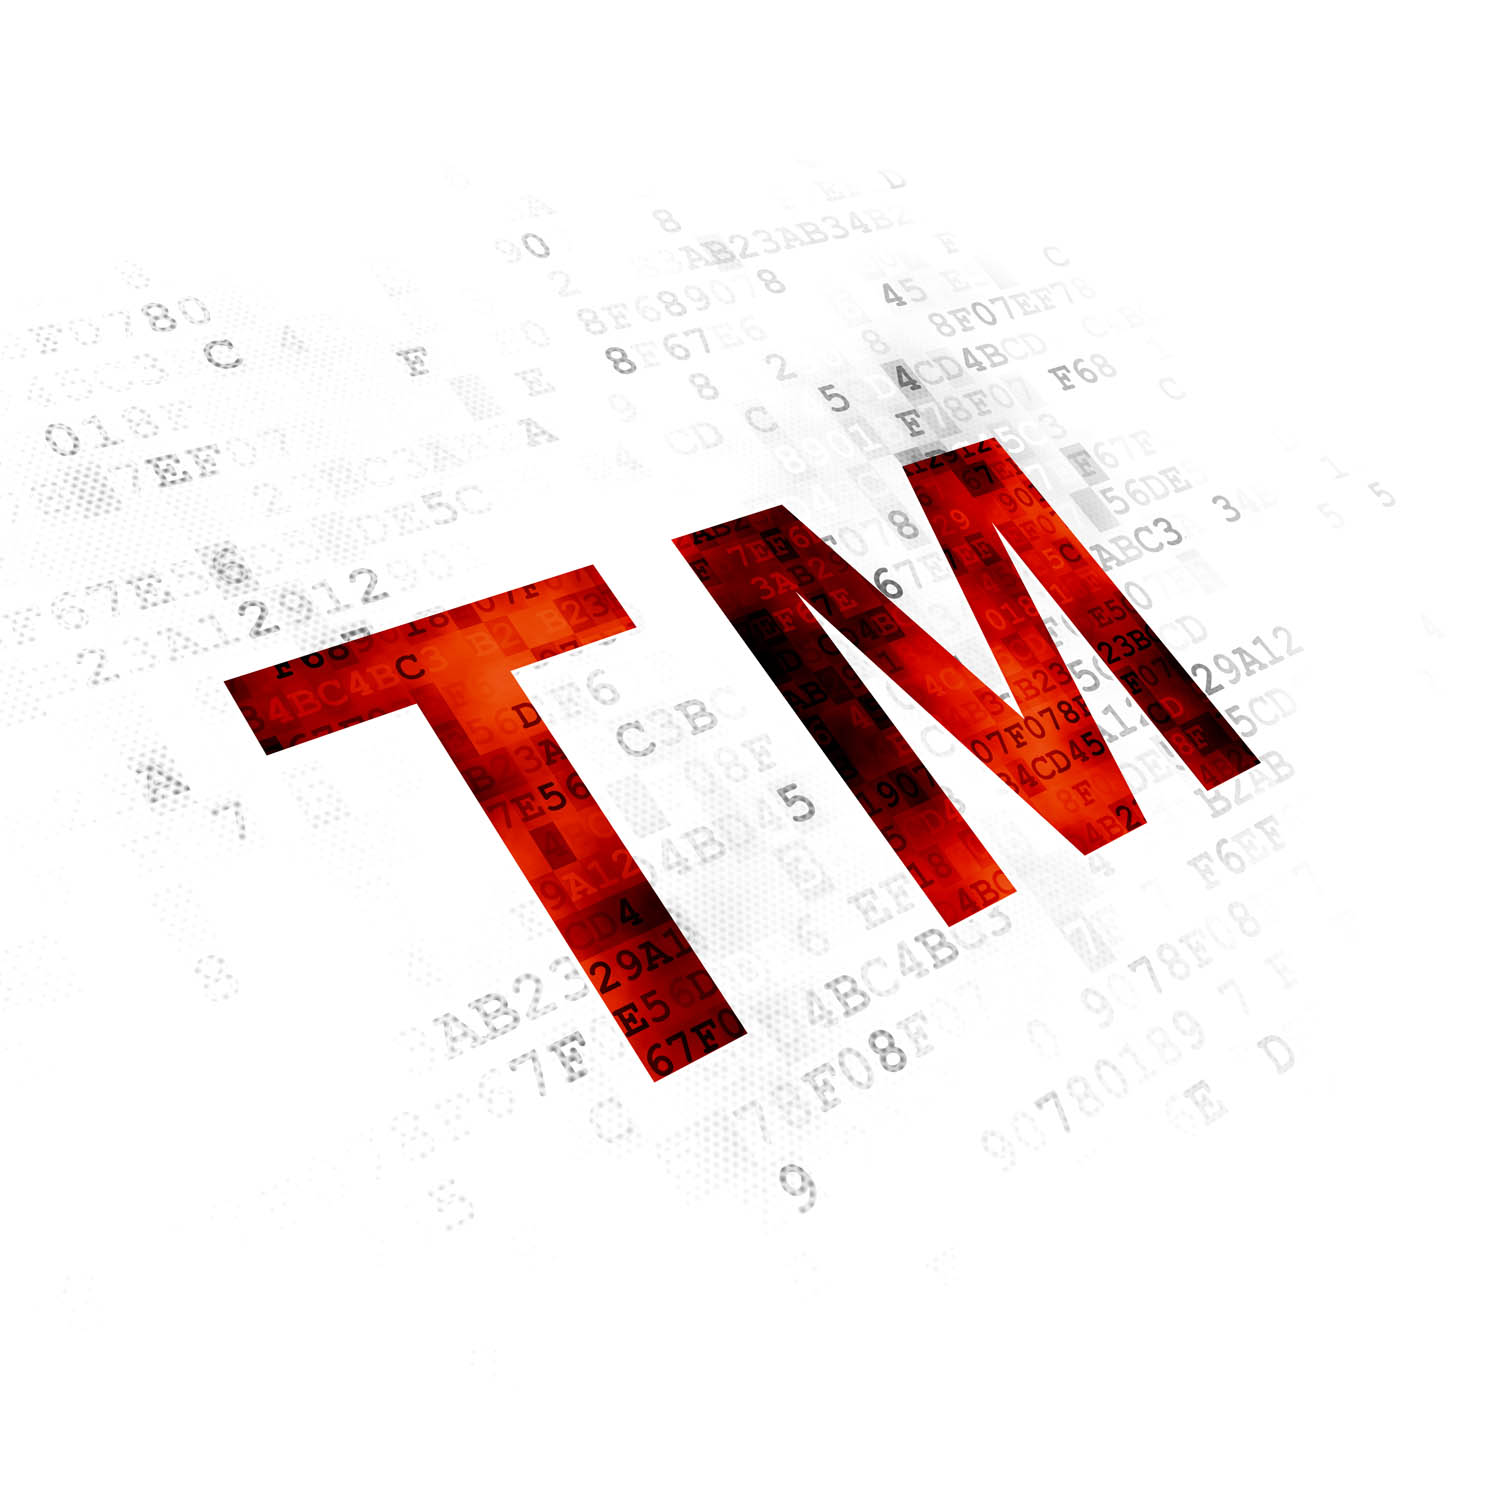 Protect Your Brand Name Through Trademark Protection